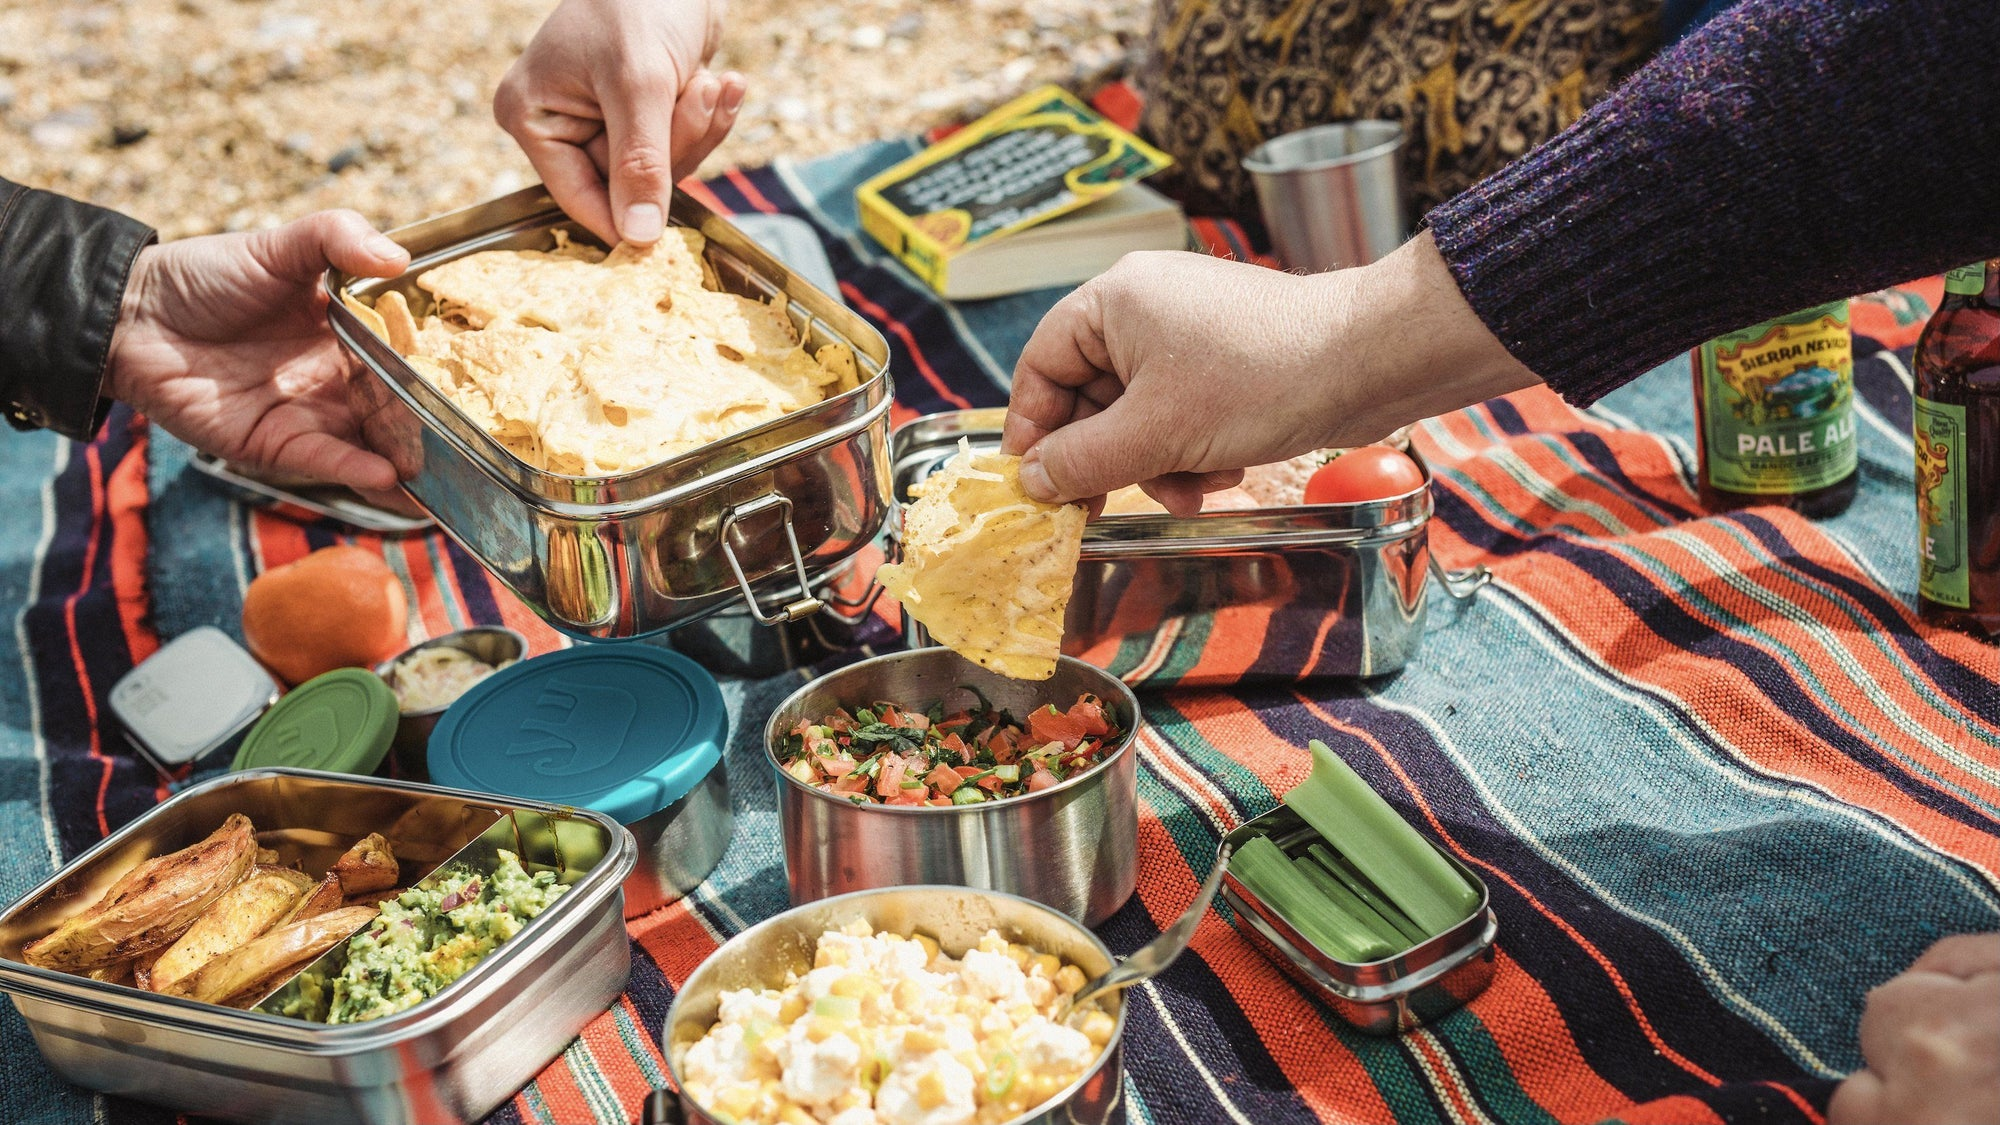 PACK A (PLANTBASED) PICNIC